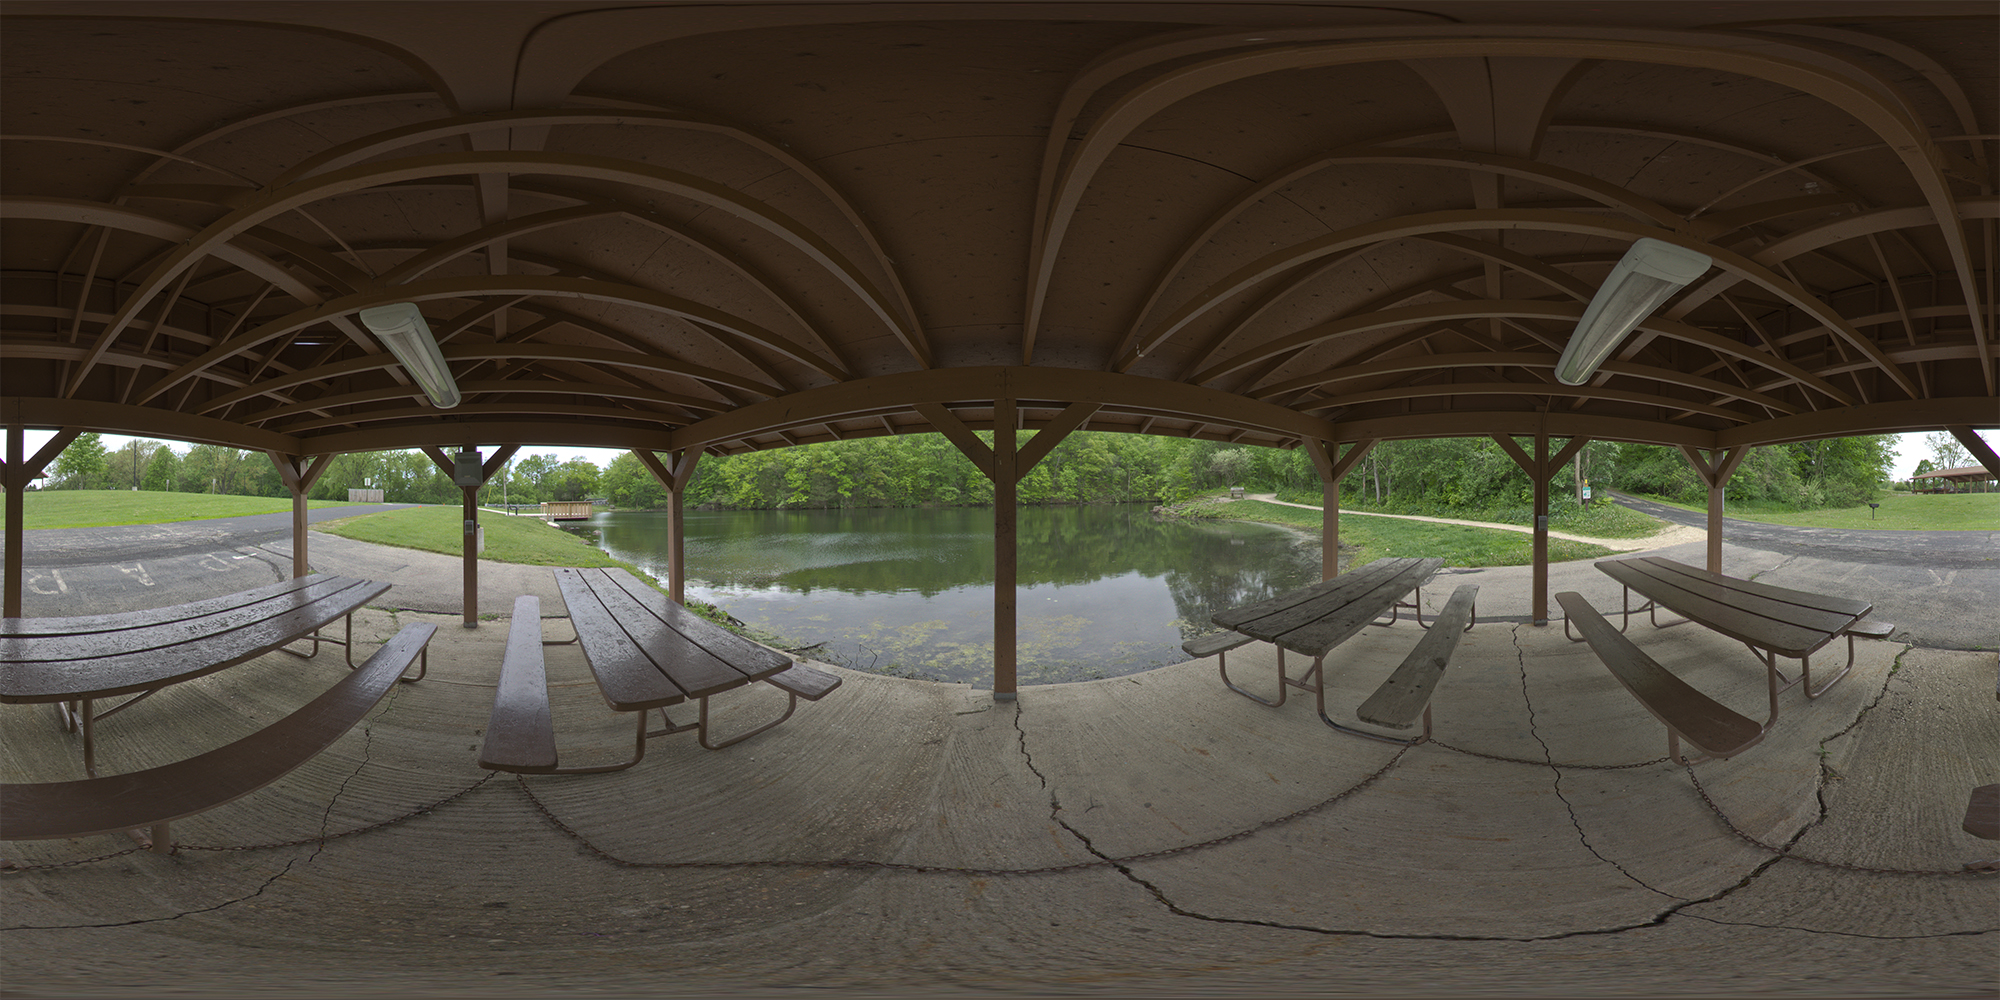 Pano 39 Preview